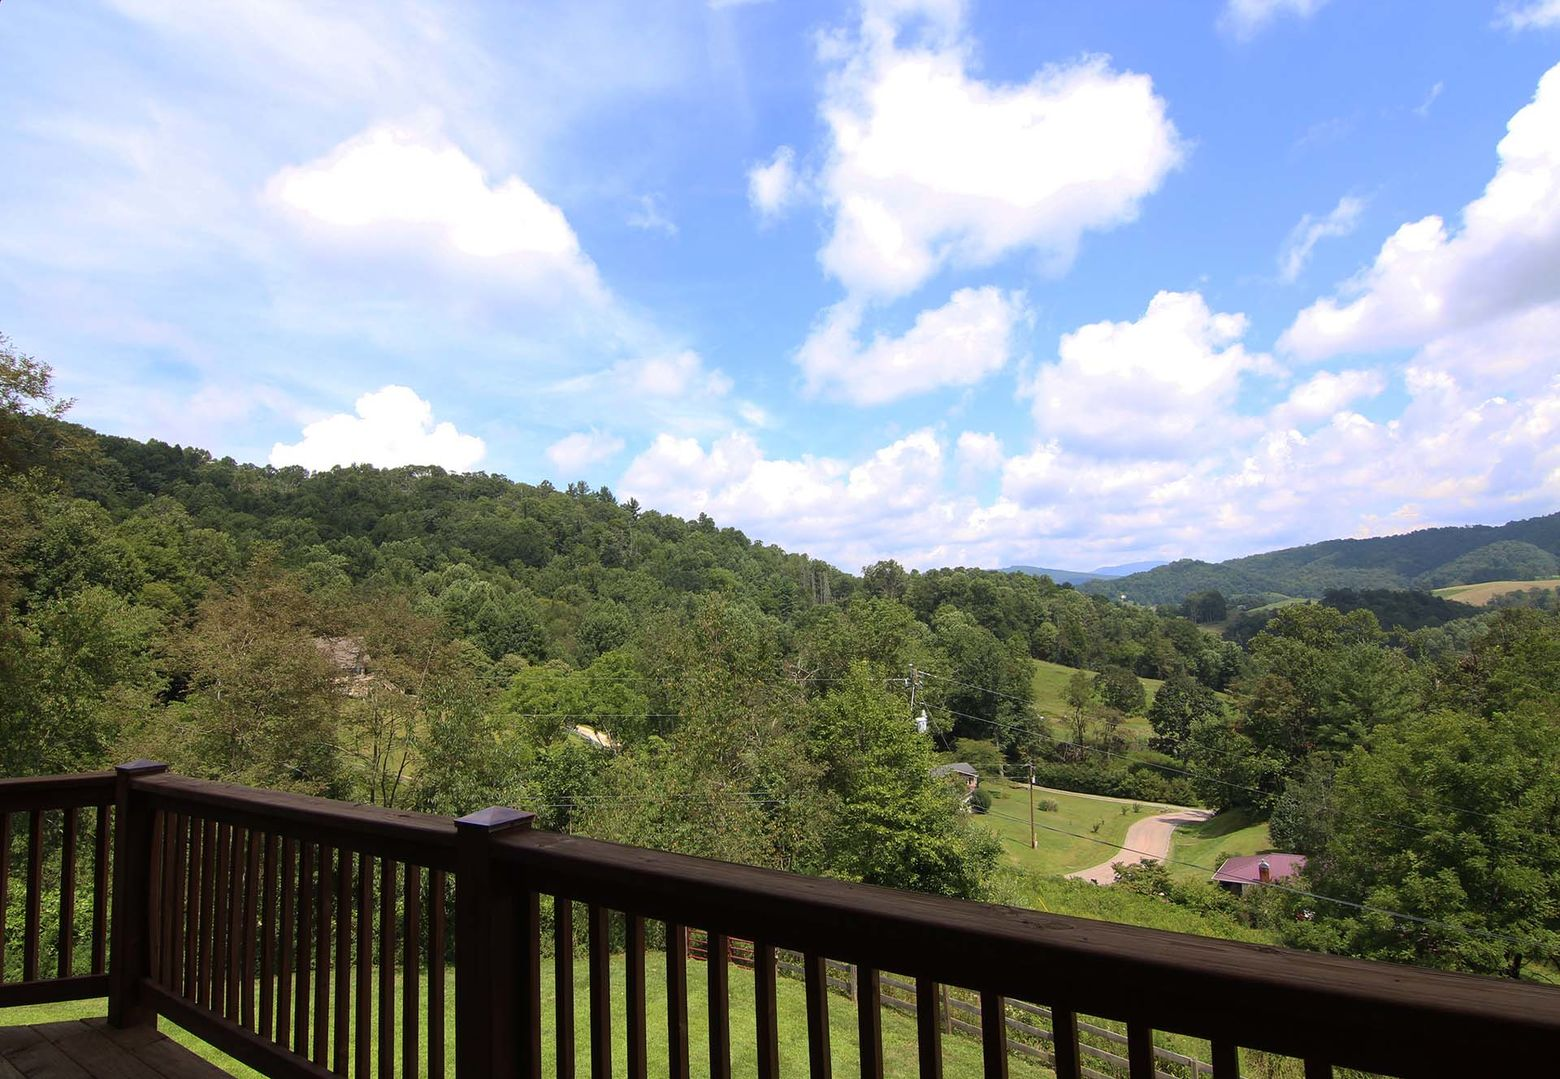 Views from the deck